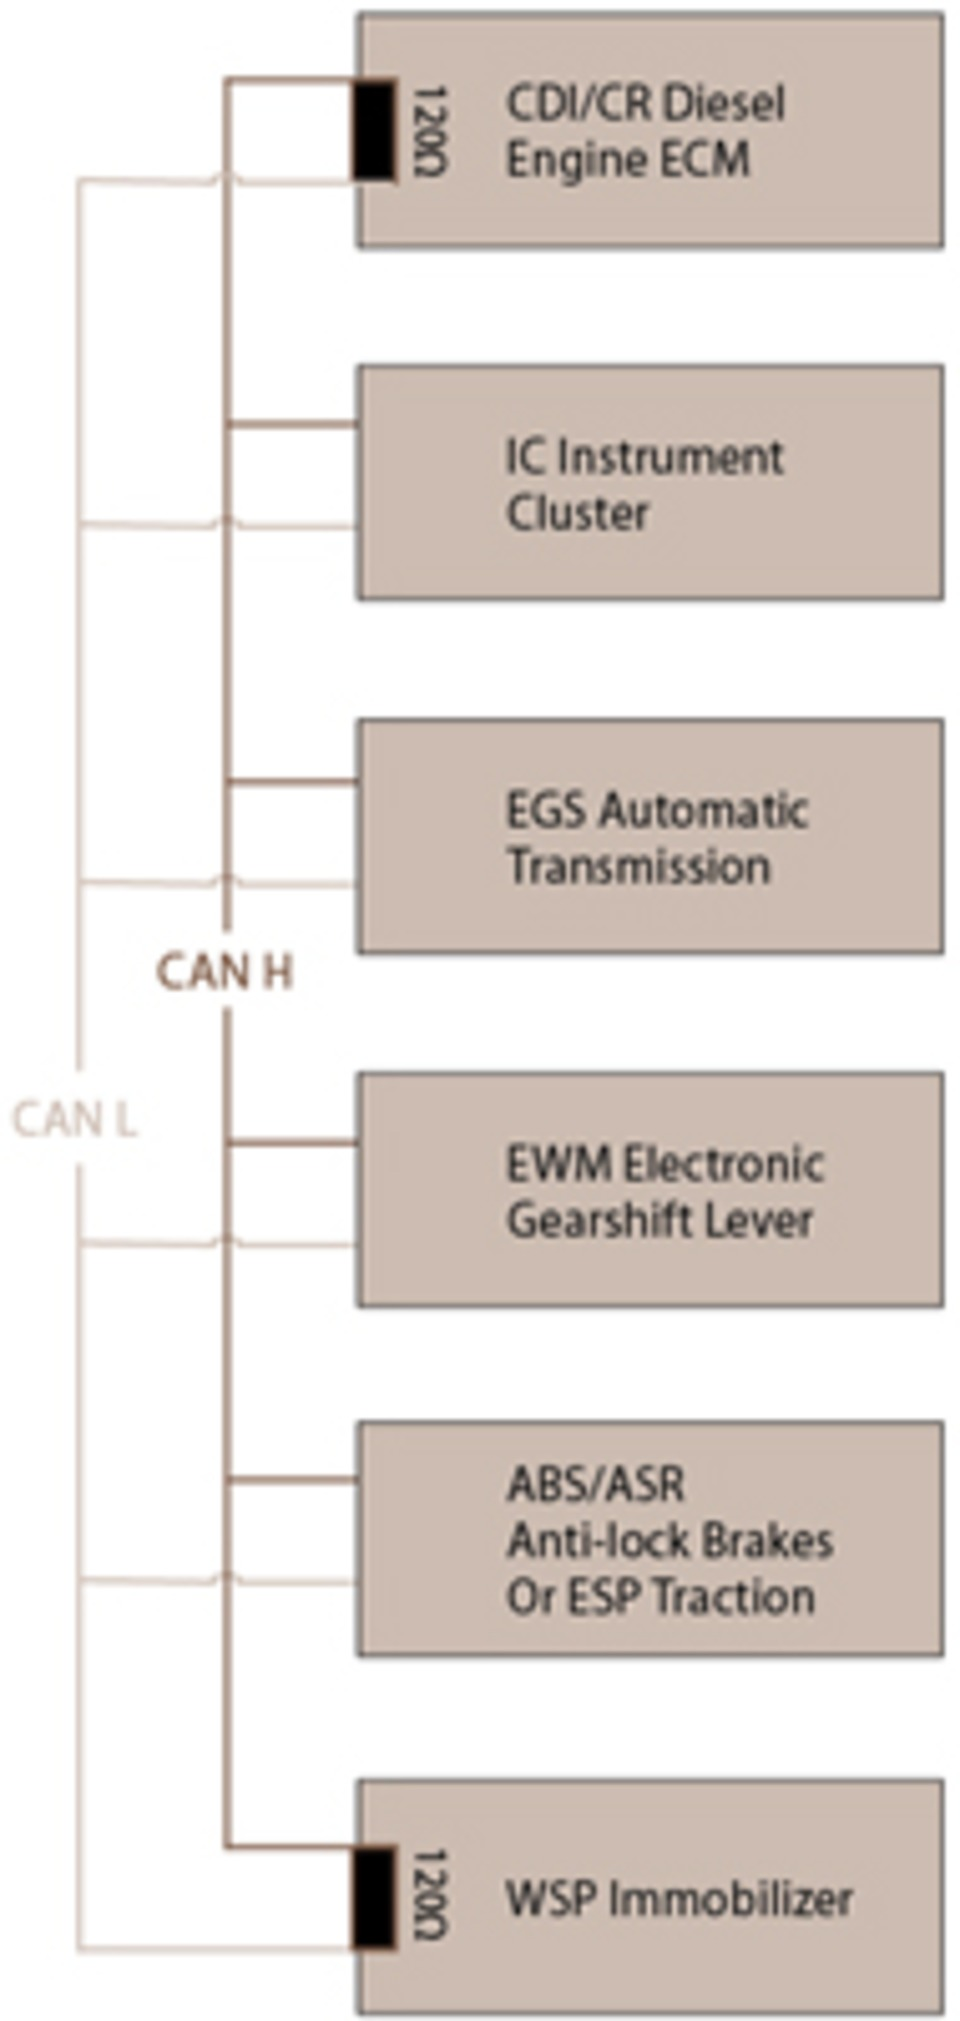 medium resolution of sprinter electrical systemssprinter wiring diagrams tcm 6